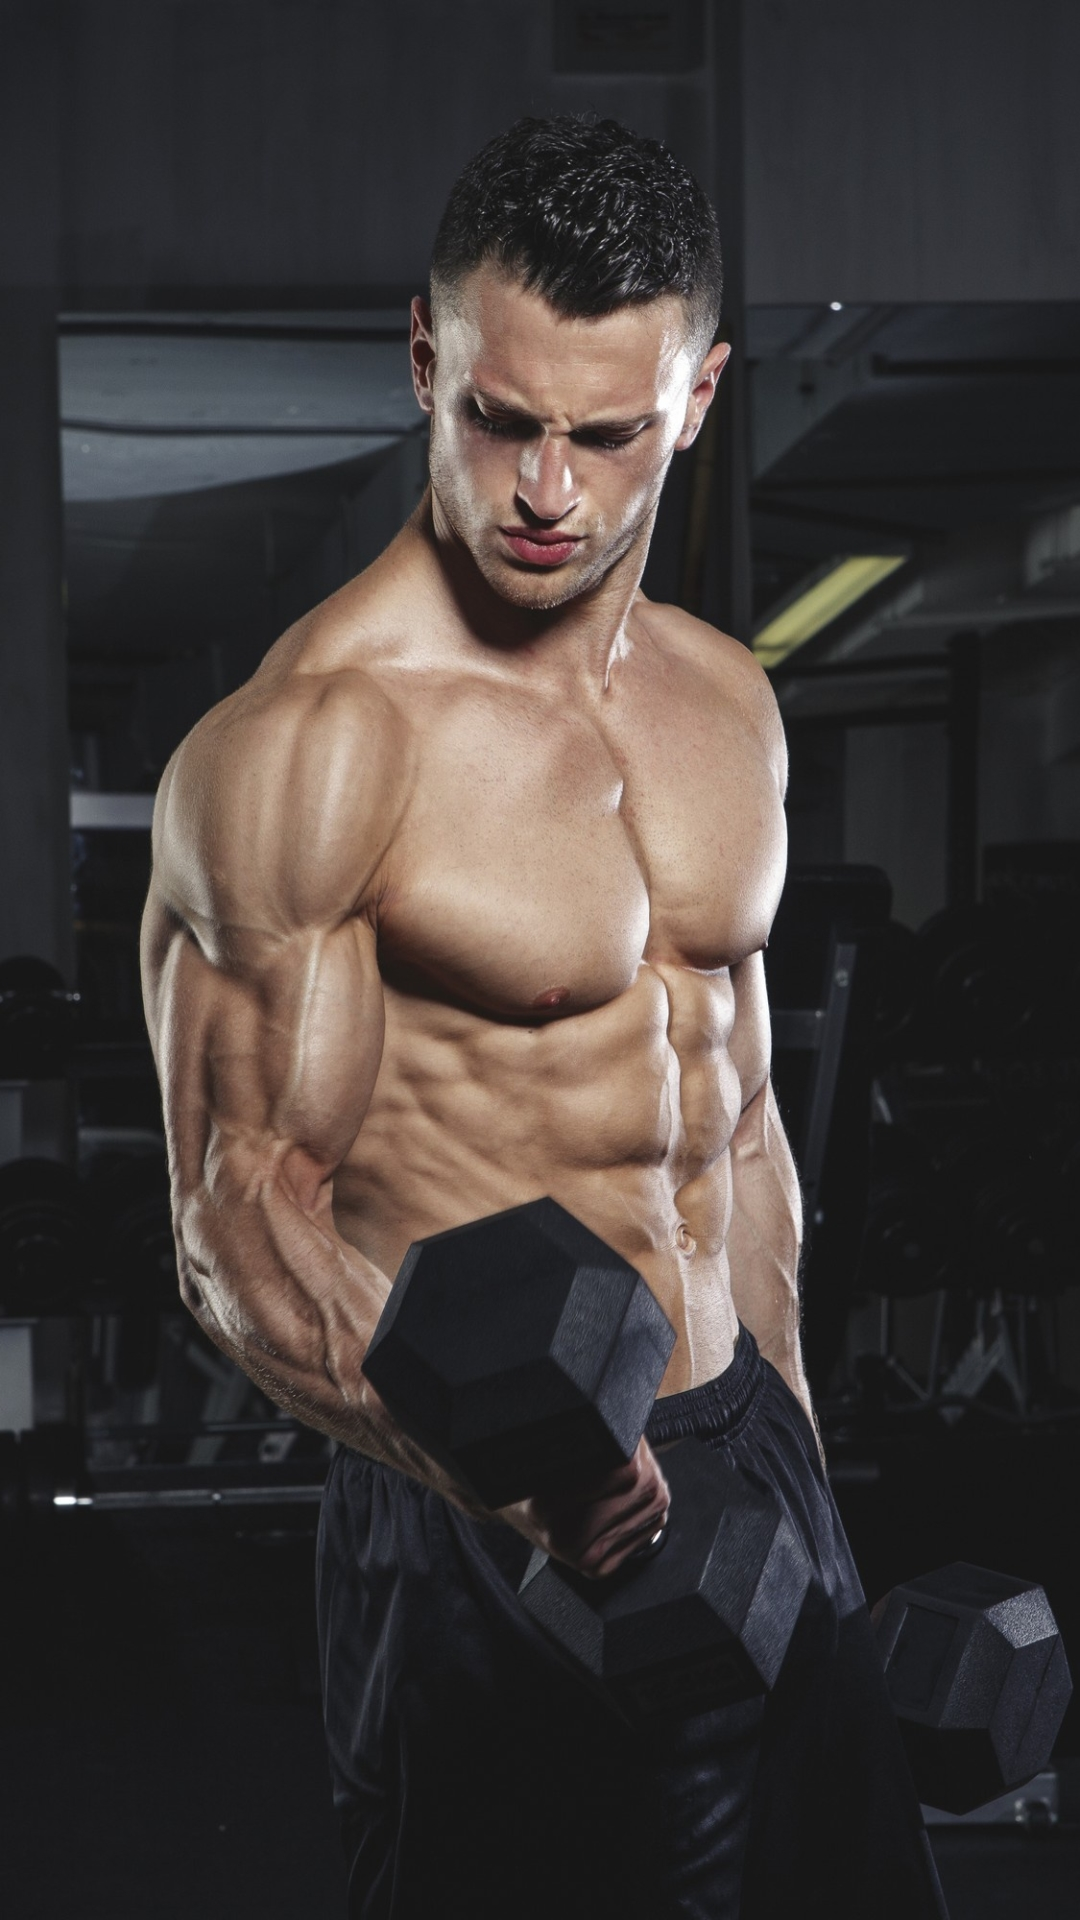 Sports Bodybuilding 1080x1920 Wallpaper Id 803879 Mobile Abyss